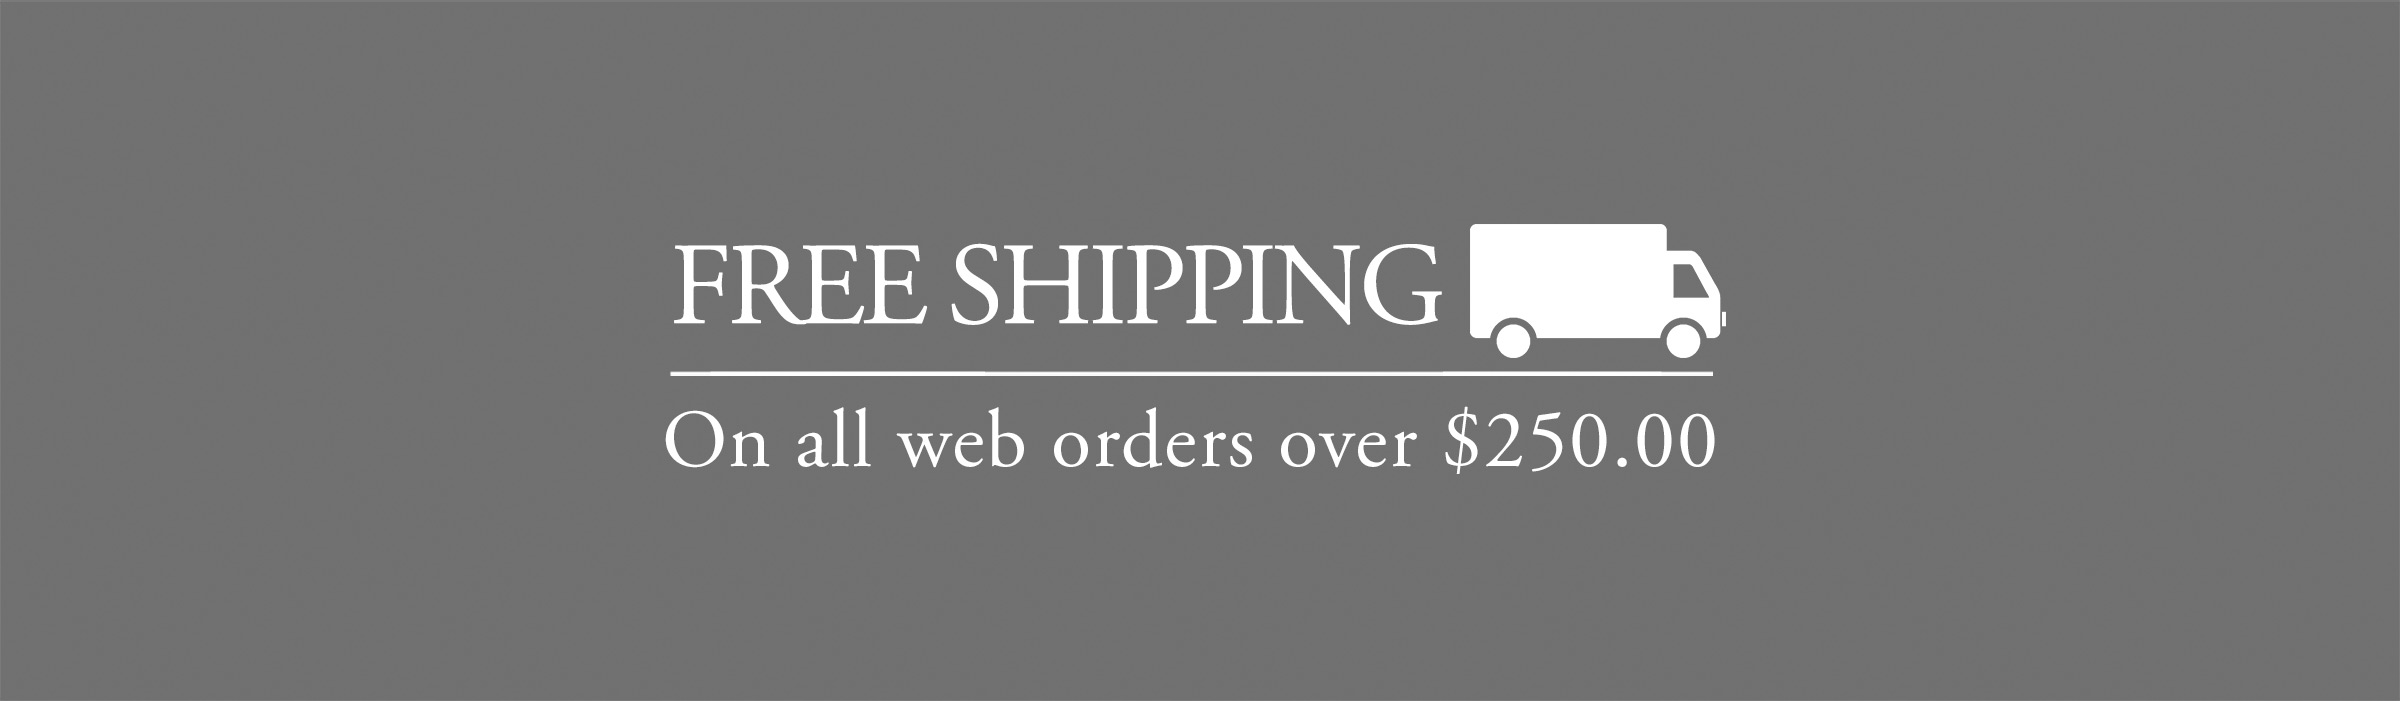 Free Shipping - On all web orders over $250